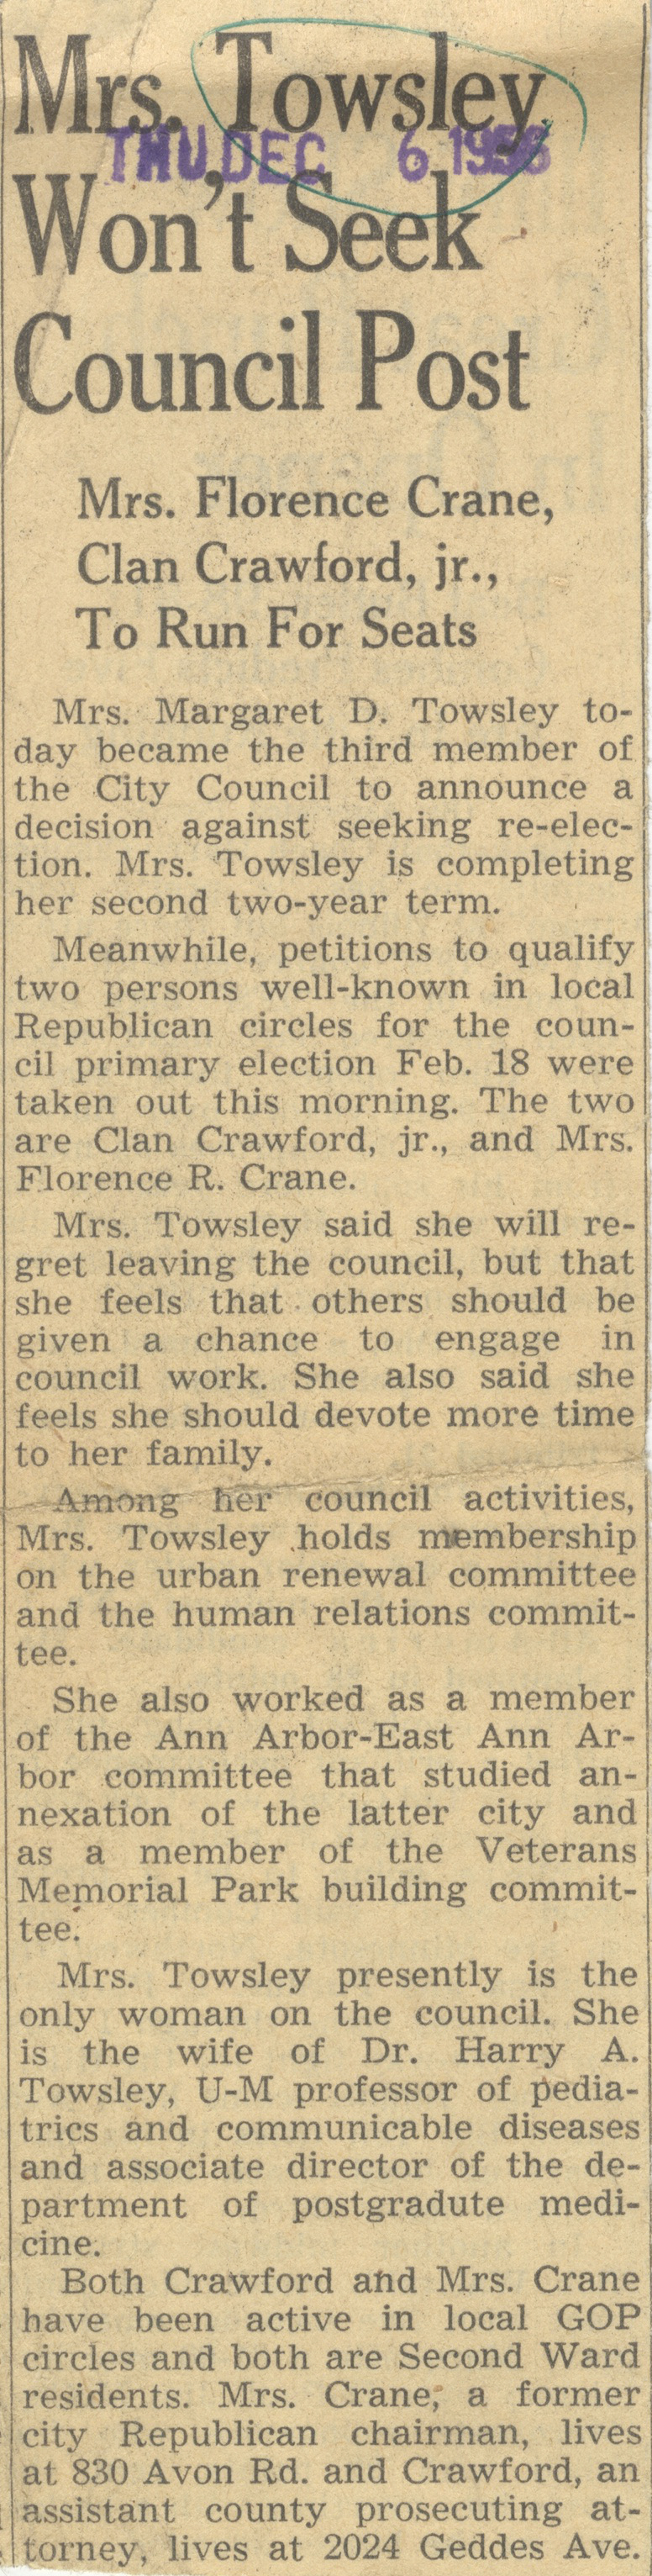 Mrs. Towsley Won't Seek Council Post image